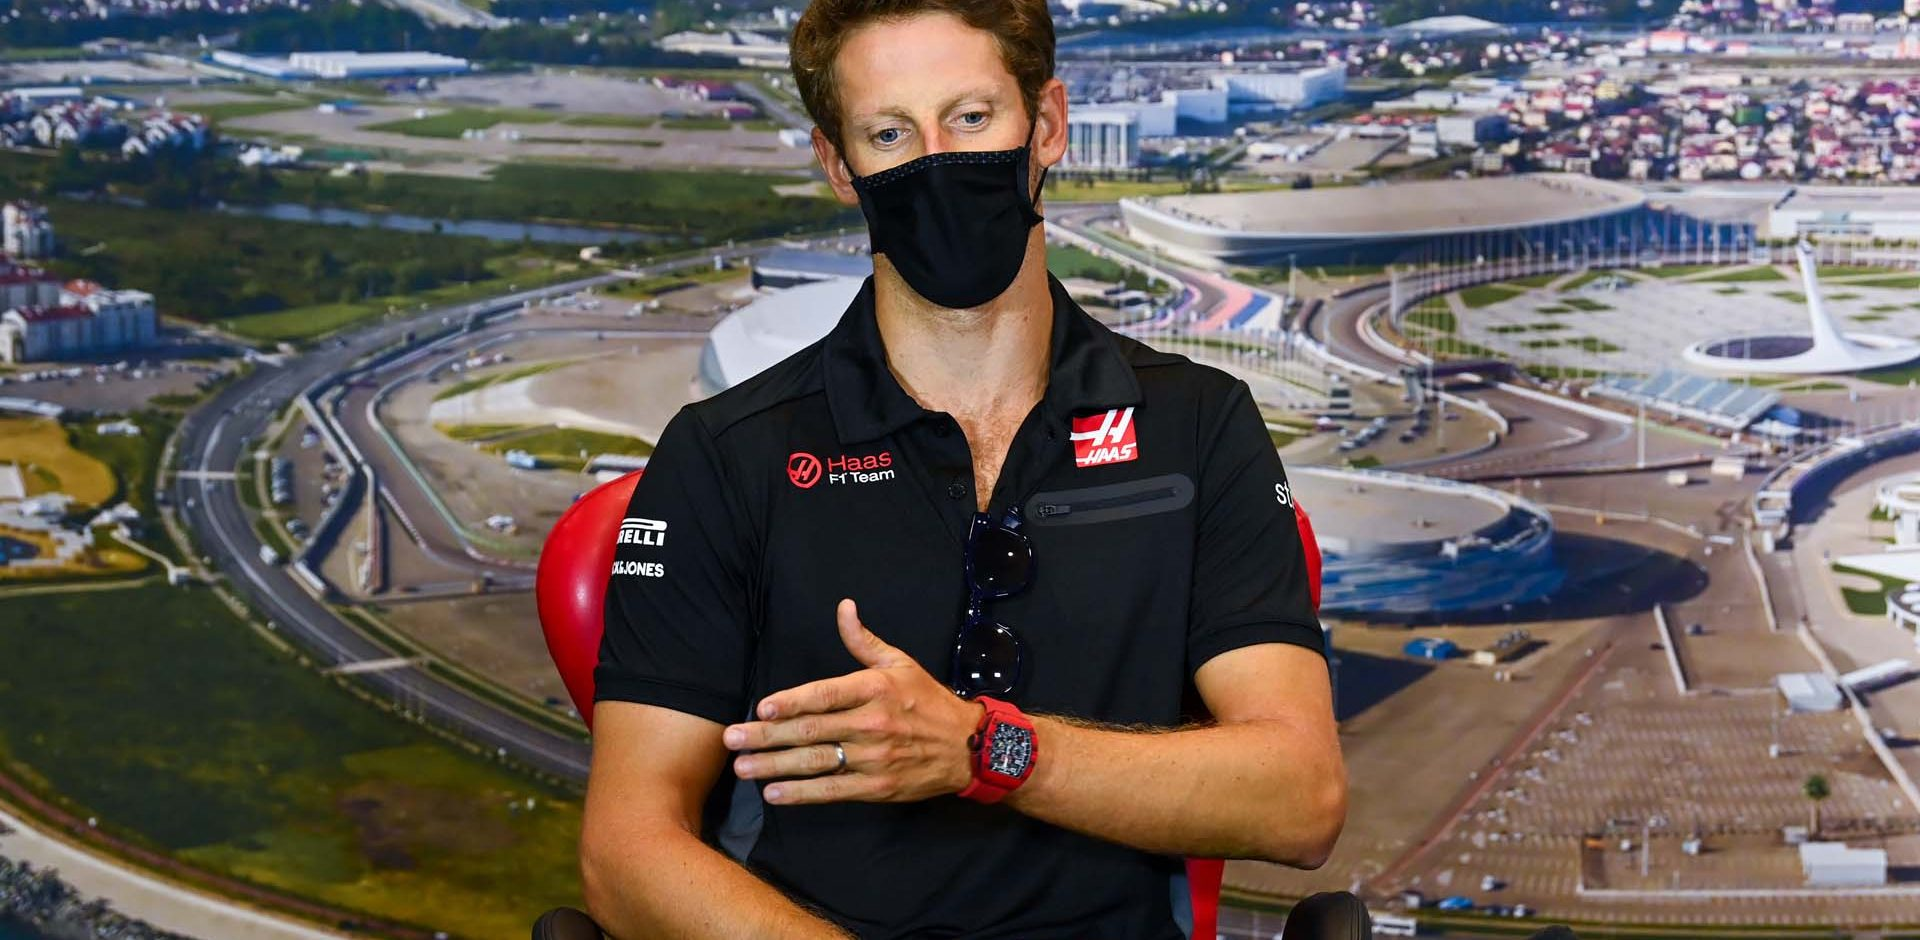 SOCHI AUTODROM, RUSSIAN FEDERATION - SEPTEMBER 24: Romain Grosjean, Haas F1, in the press conference during the Russian GP at Sochi Autodrom on Thursday September 24, 2020 in Sochi, Russian Federation. (Photo by Mark Sutton / Sutton Images)